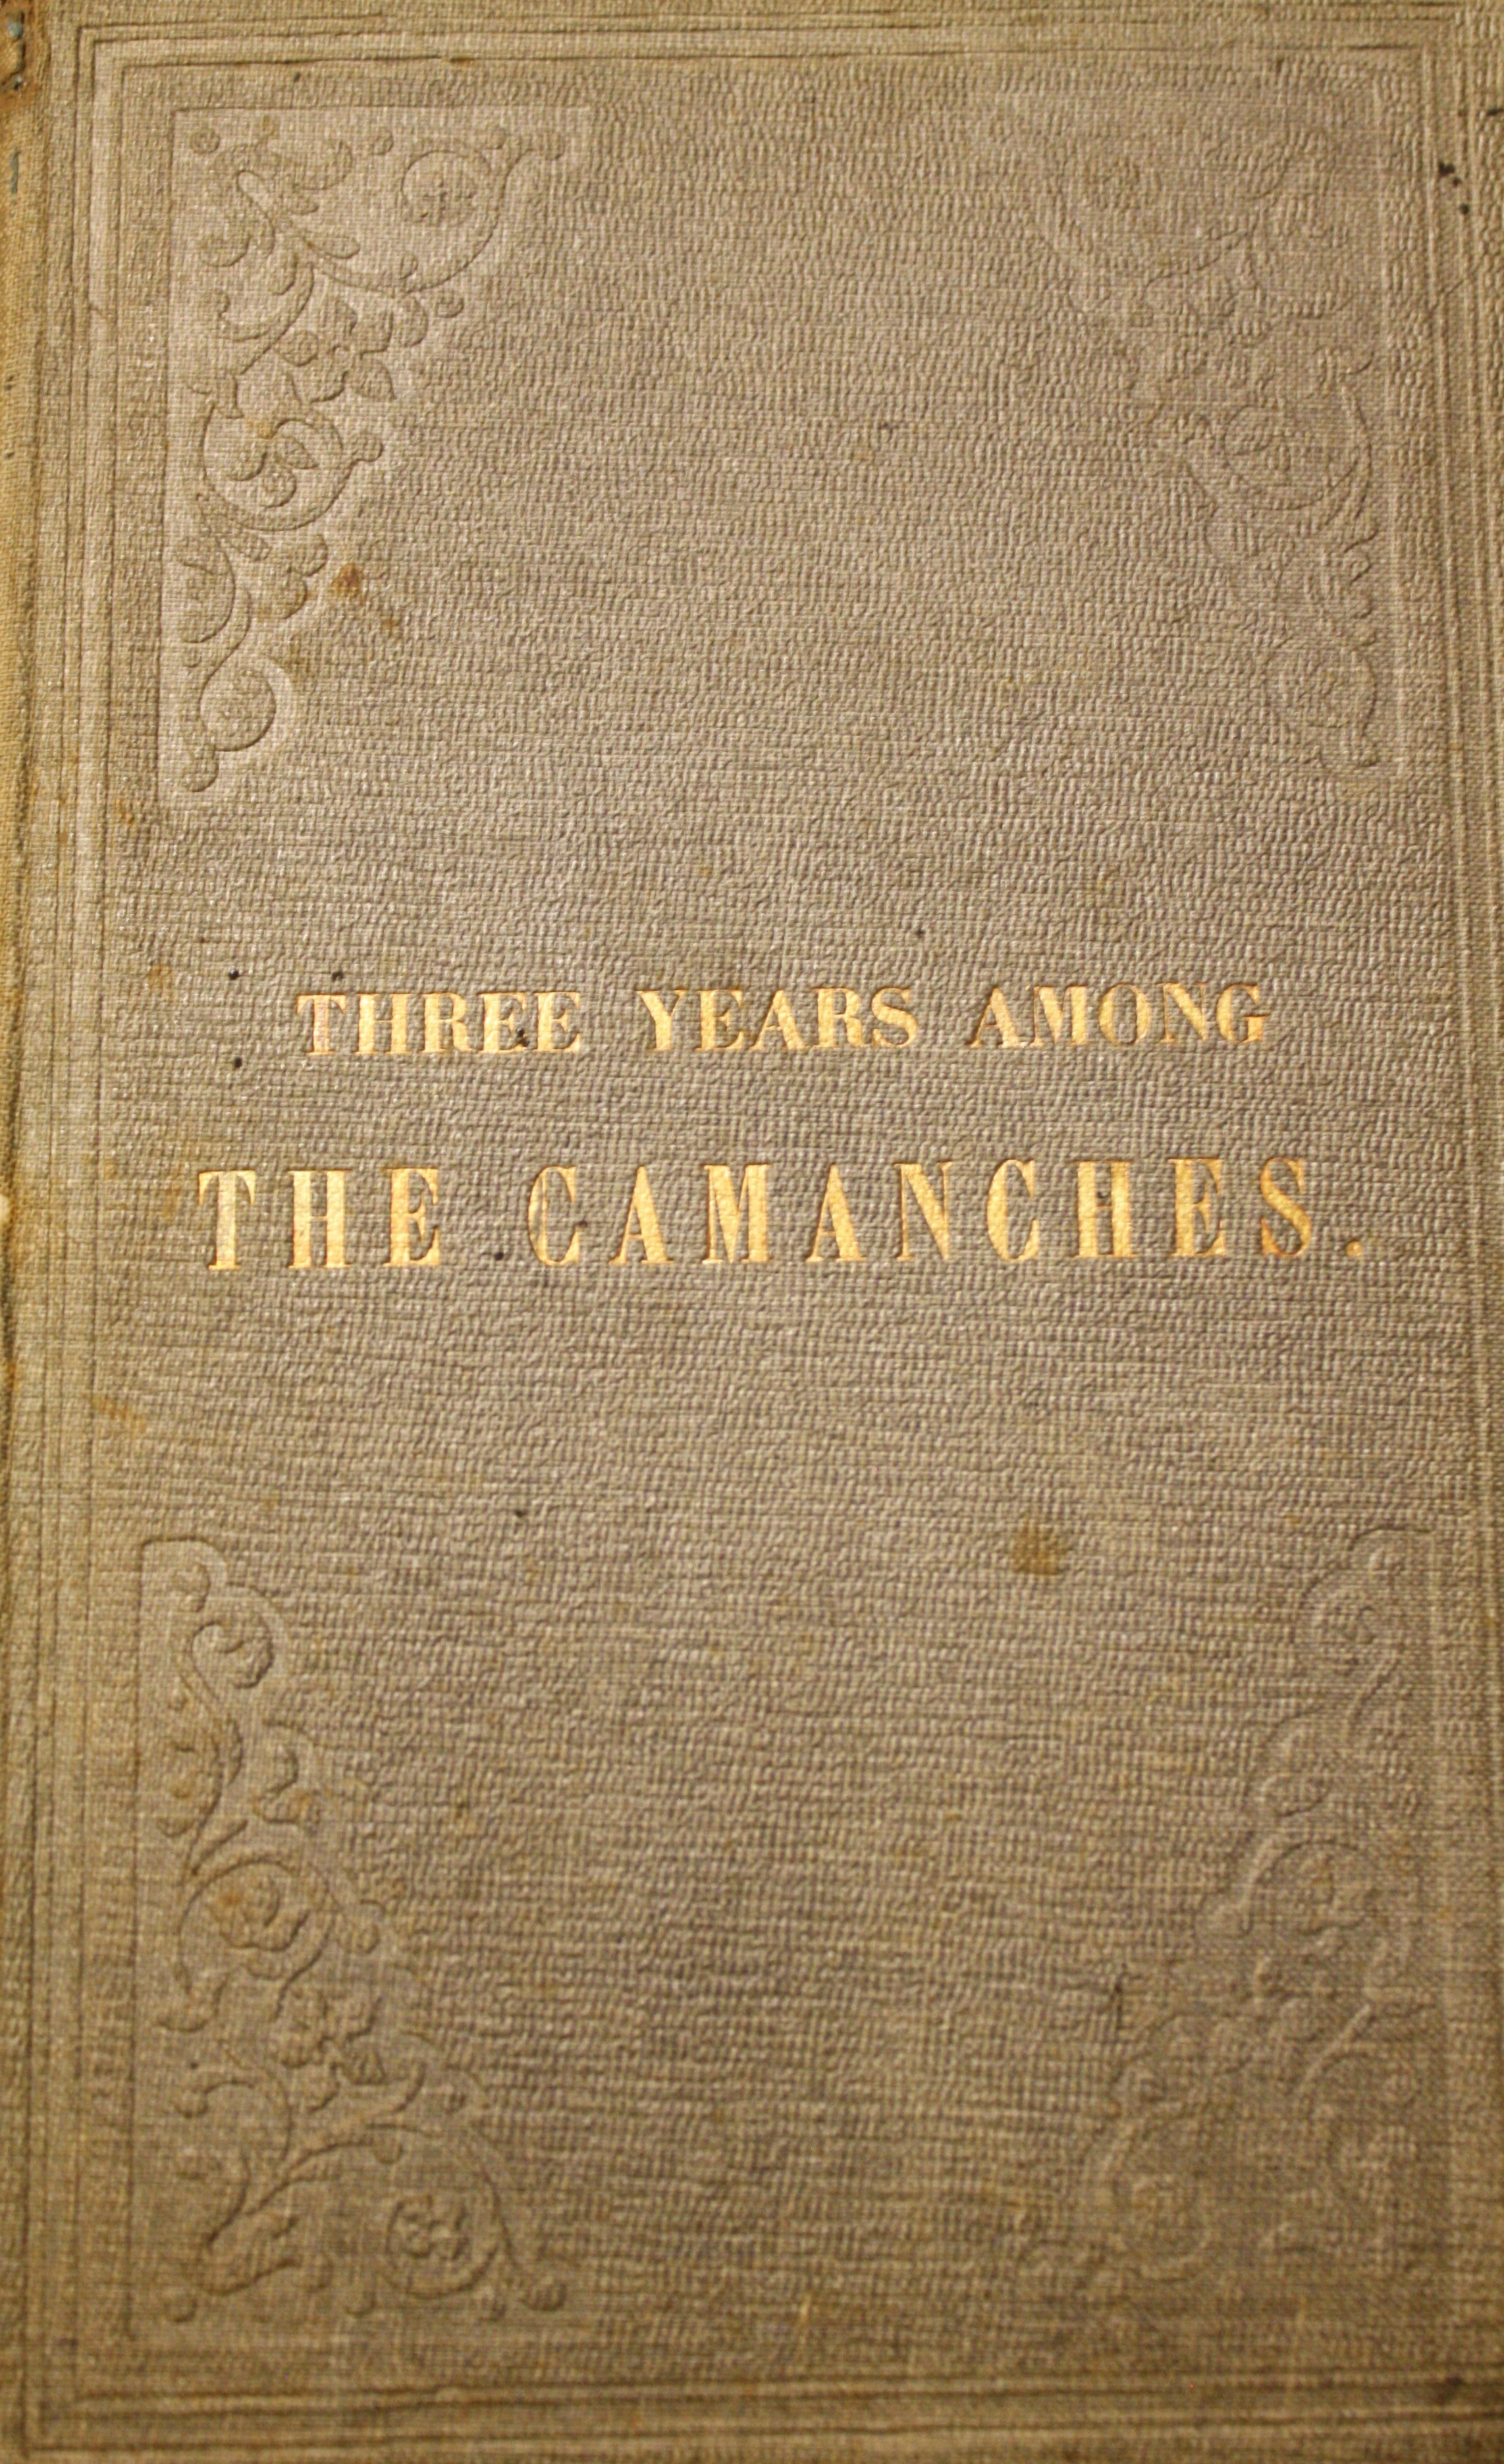 Image for Three Years Among the Camanches, The Narrative of Nelson Lee, the Texas Ranger Containing a Detailed Account of his Captivity Among the Indians, His Singular Escape Through the Instrumentality of his Watch and Fully Illustrating Indian Life as it is on the War Path and in the Camp